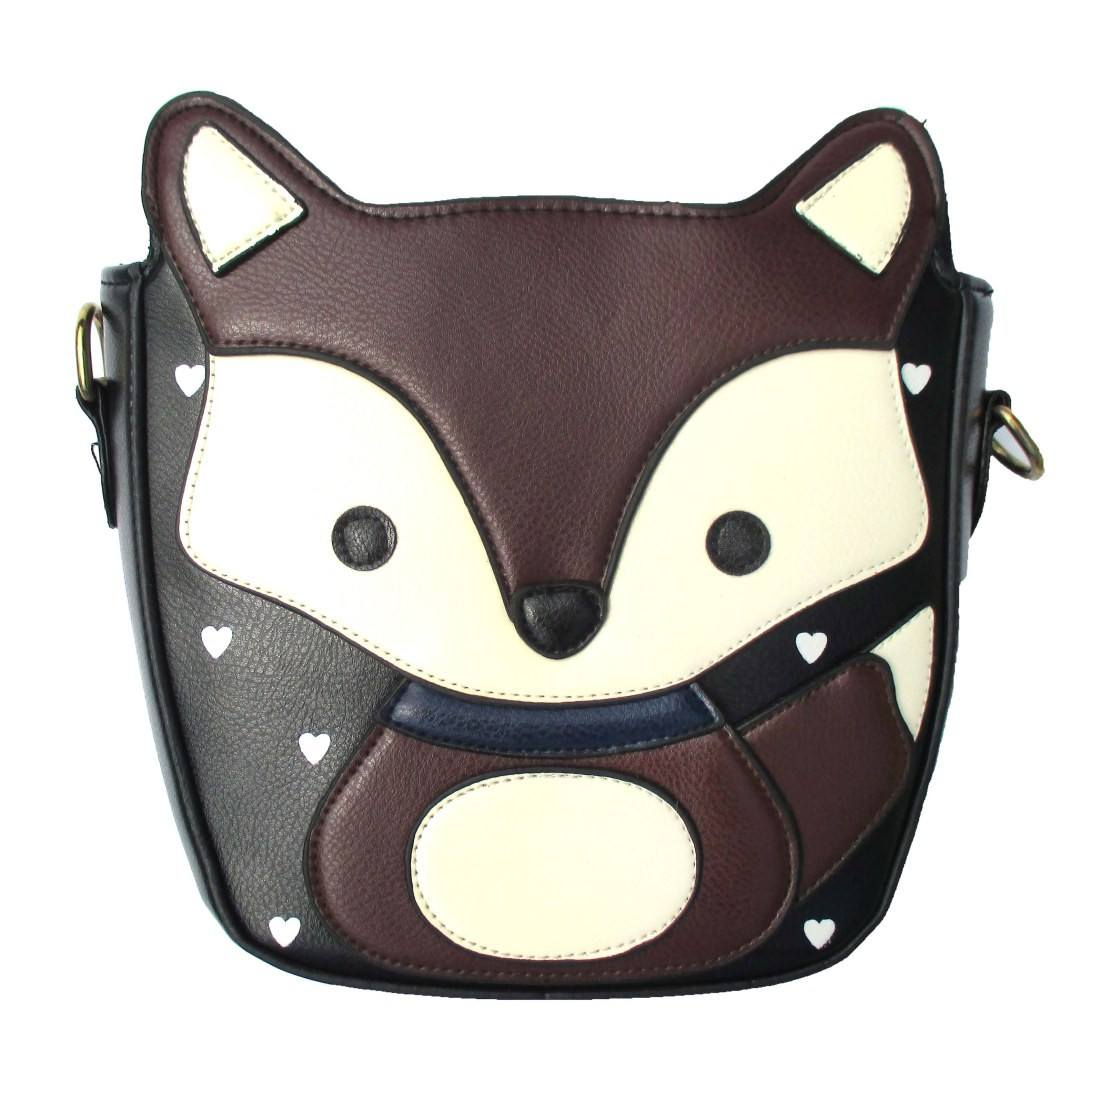 Fox Wolf Shaped Animal Themed Cross Body Shoulder Bag in Dark Brown